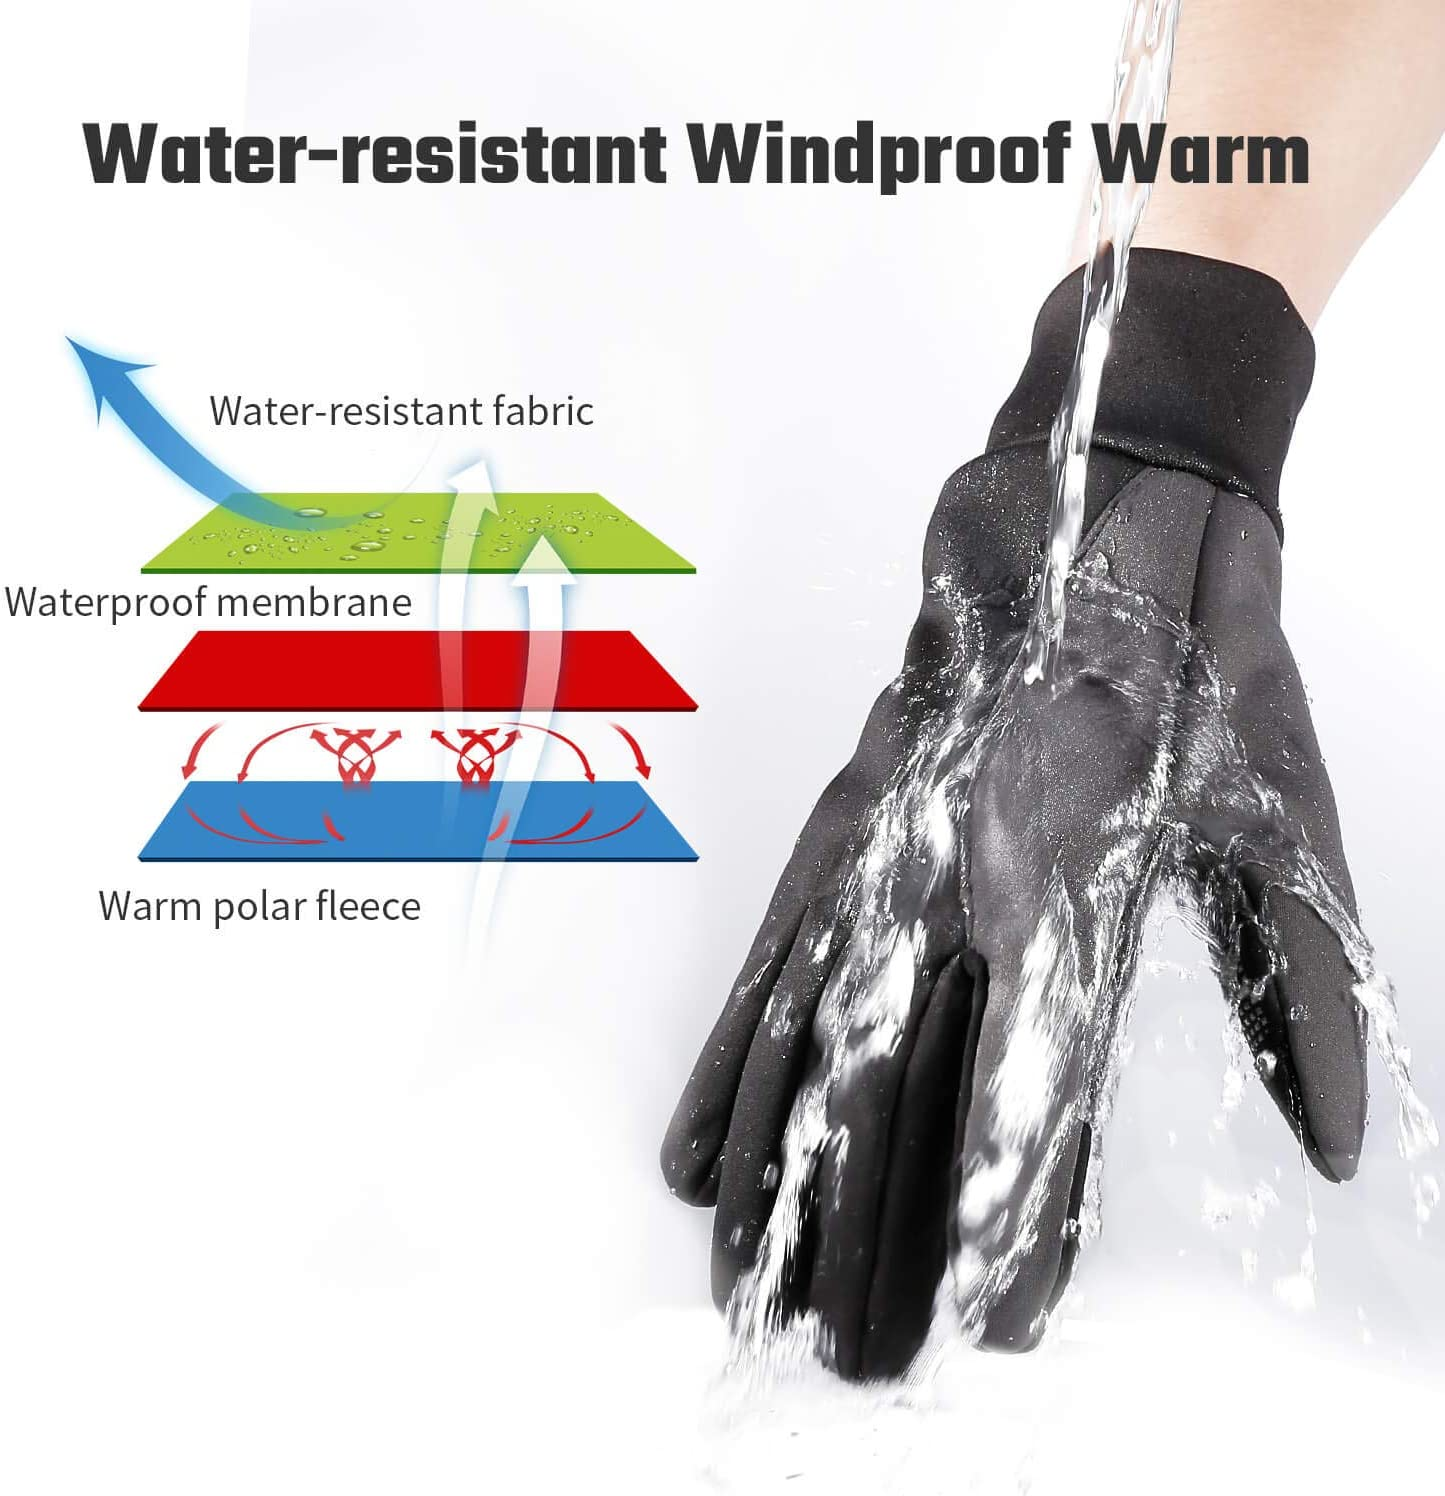 FanVince Winter Thermal Gloves Touch Screen Water Resistant Warm Glove Windproof for Running Cycling Driving Phone Texting Outdoor Hiking Best Gifts for Men and Women